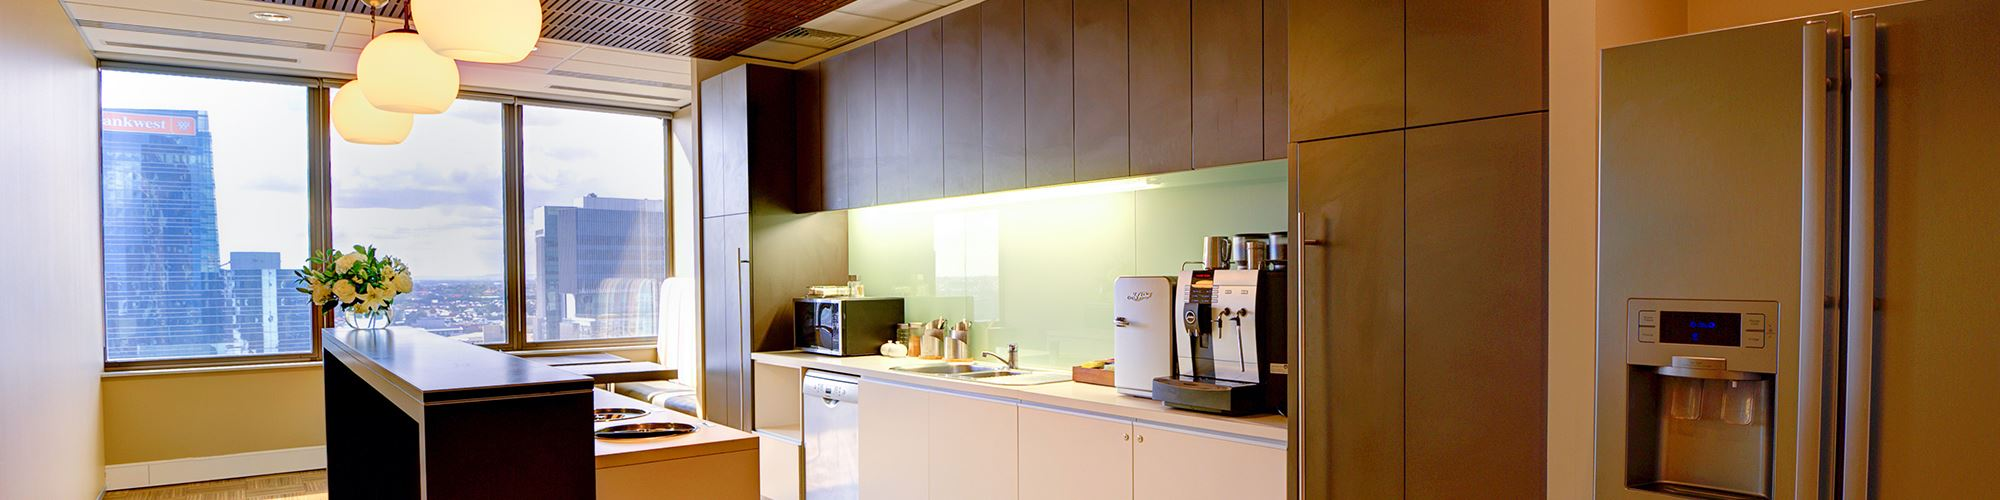 banner-amp-tower-perth-office-kitchen.jpg